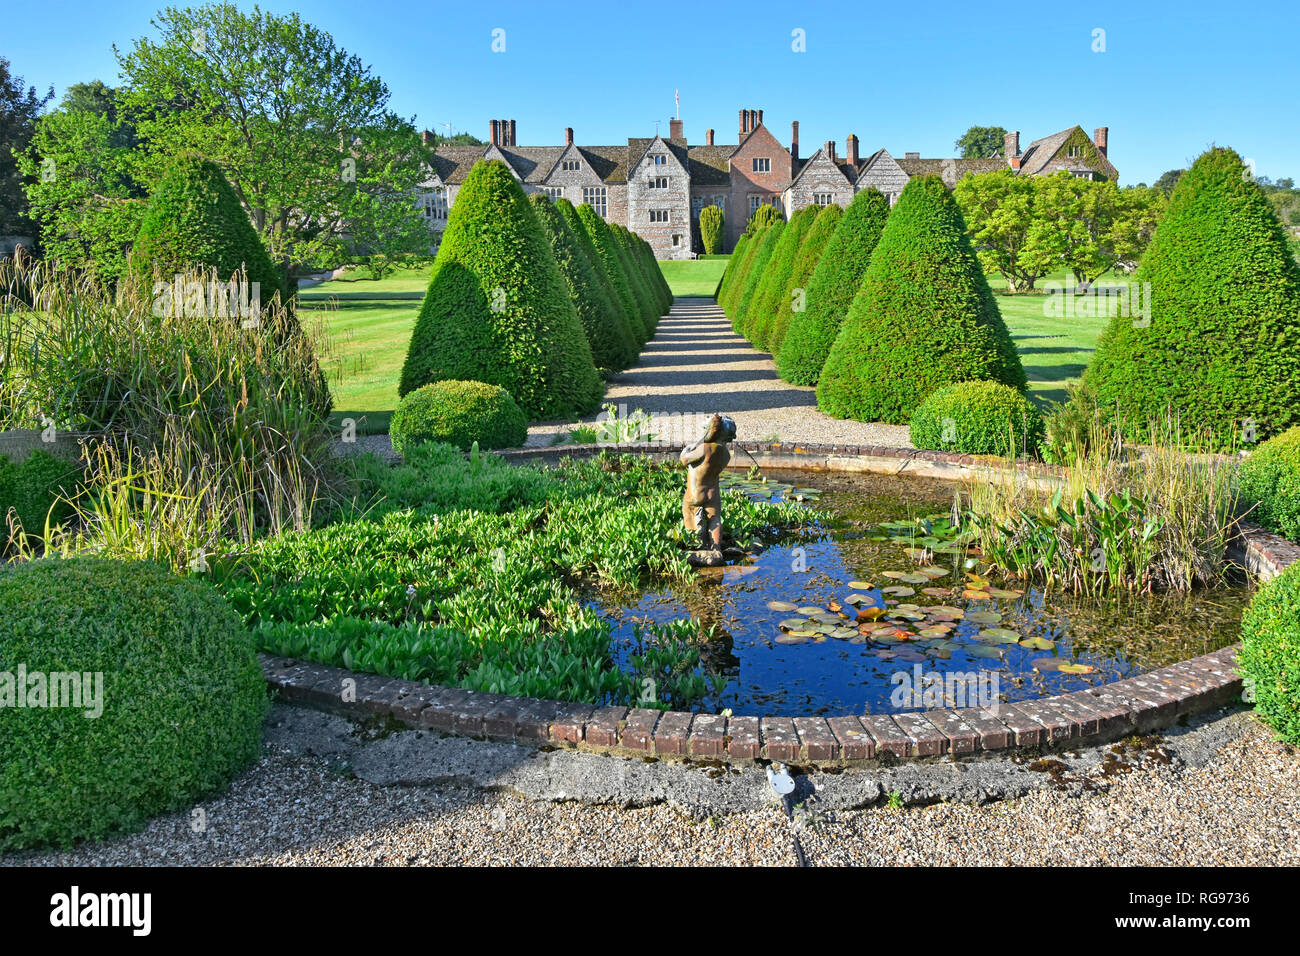 Elizabethan rural garden topiary & path with pond in historic parkland & gardens rows of repeat conifers Littlecote House beyond Wiltshire England UK Stock Photo